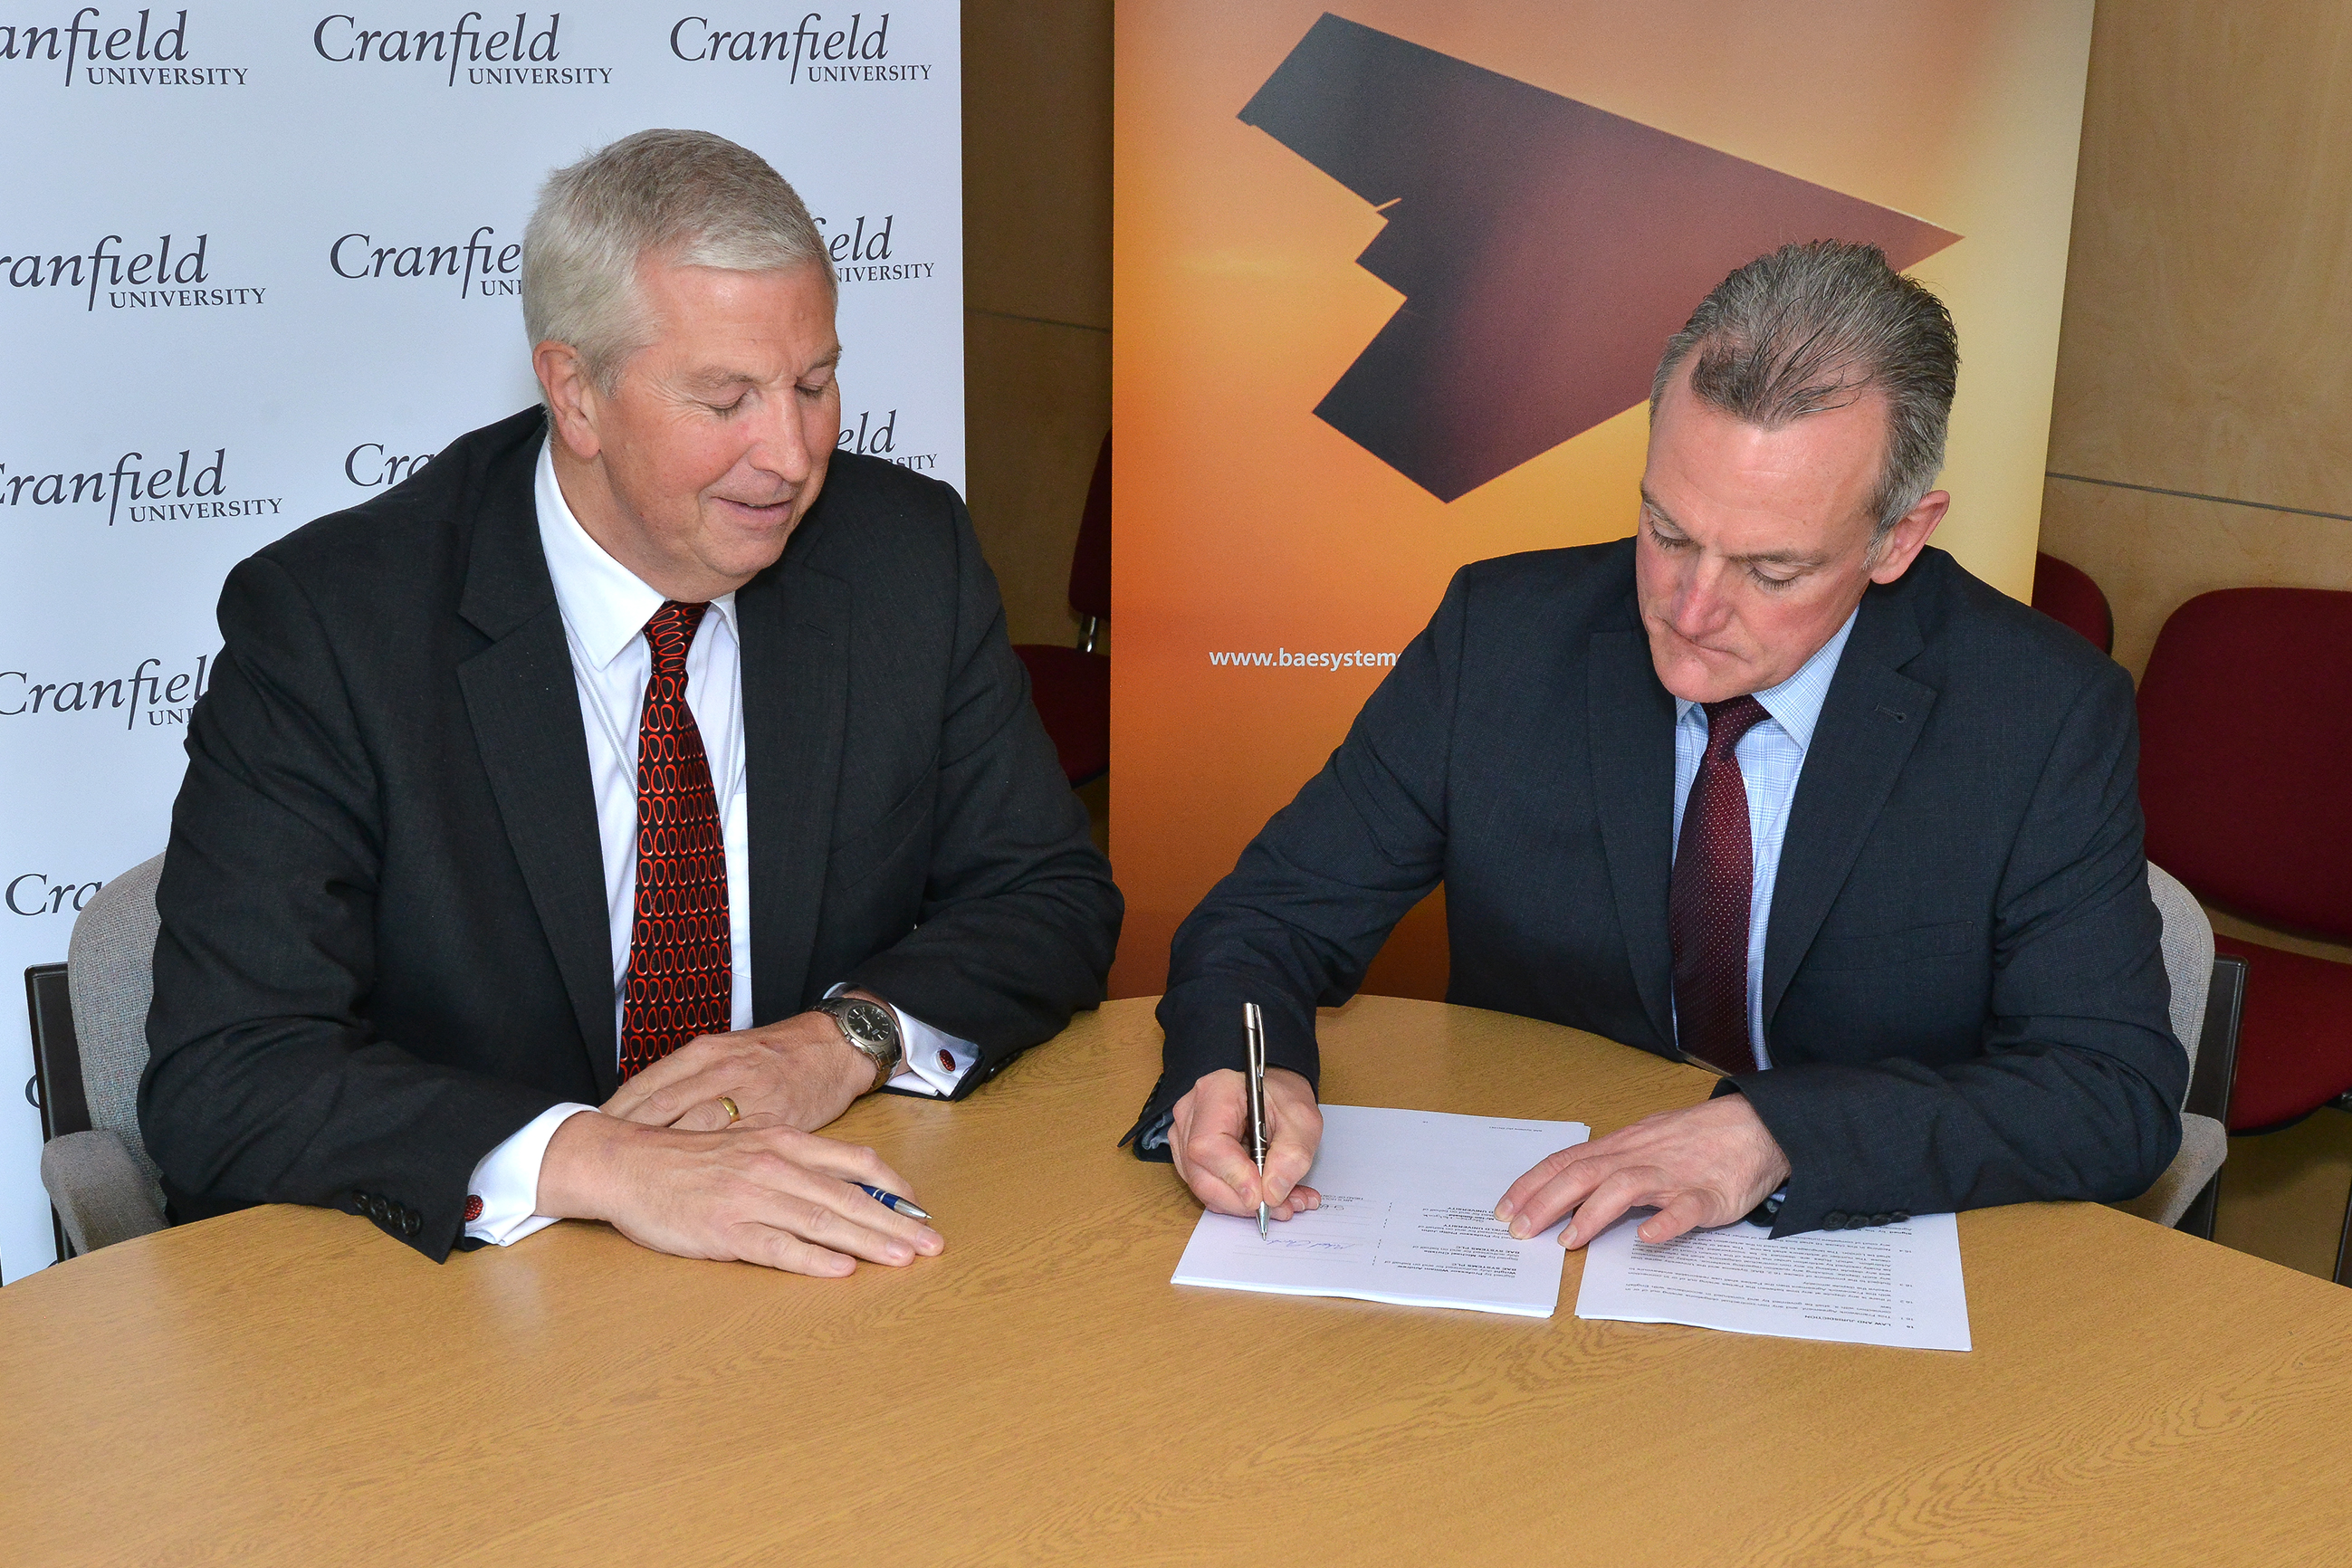 Cranfield University the first to sign strategic framework agreement with BAE Systems